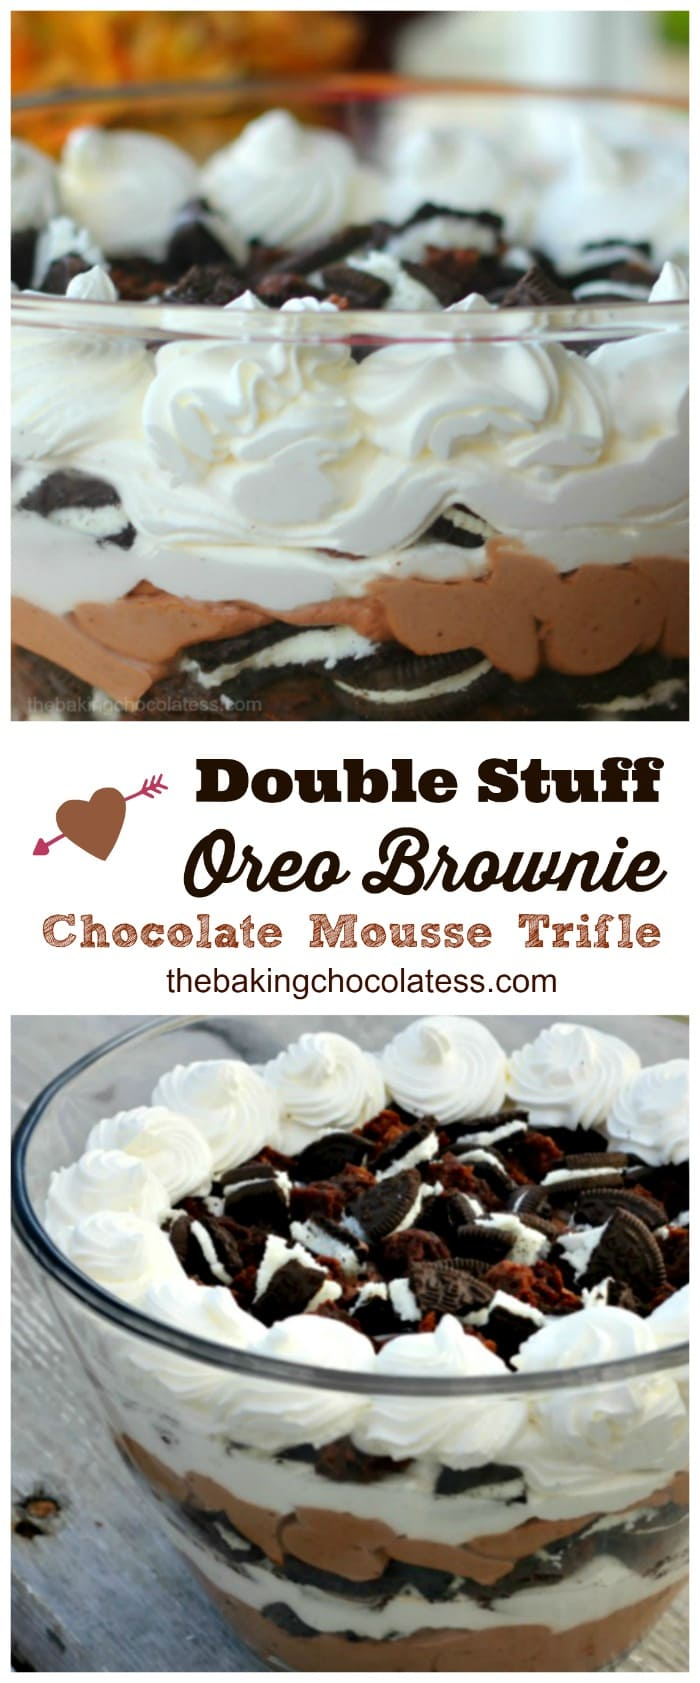 Double Stuff Oreo Brownie Chocolate Mousse Trifle is all about impressing.  Lots of fresh whipped cream, lots of double stuff Oreos, rich chocolate mousse and fudgy BROWNIES!!  #oreo #brownies #dessert #trifle #video #mousse #pudding